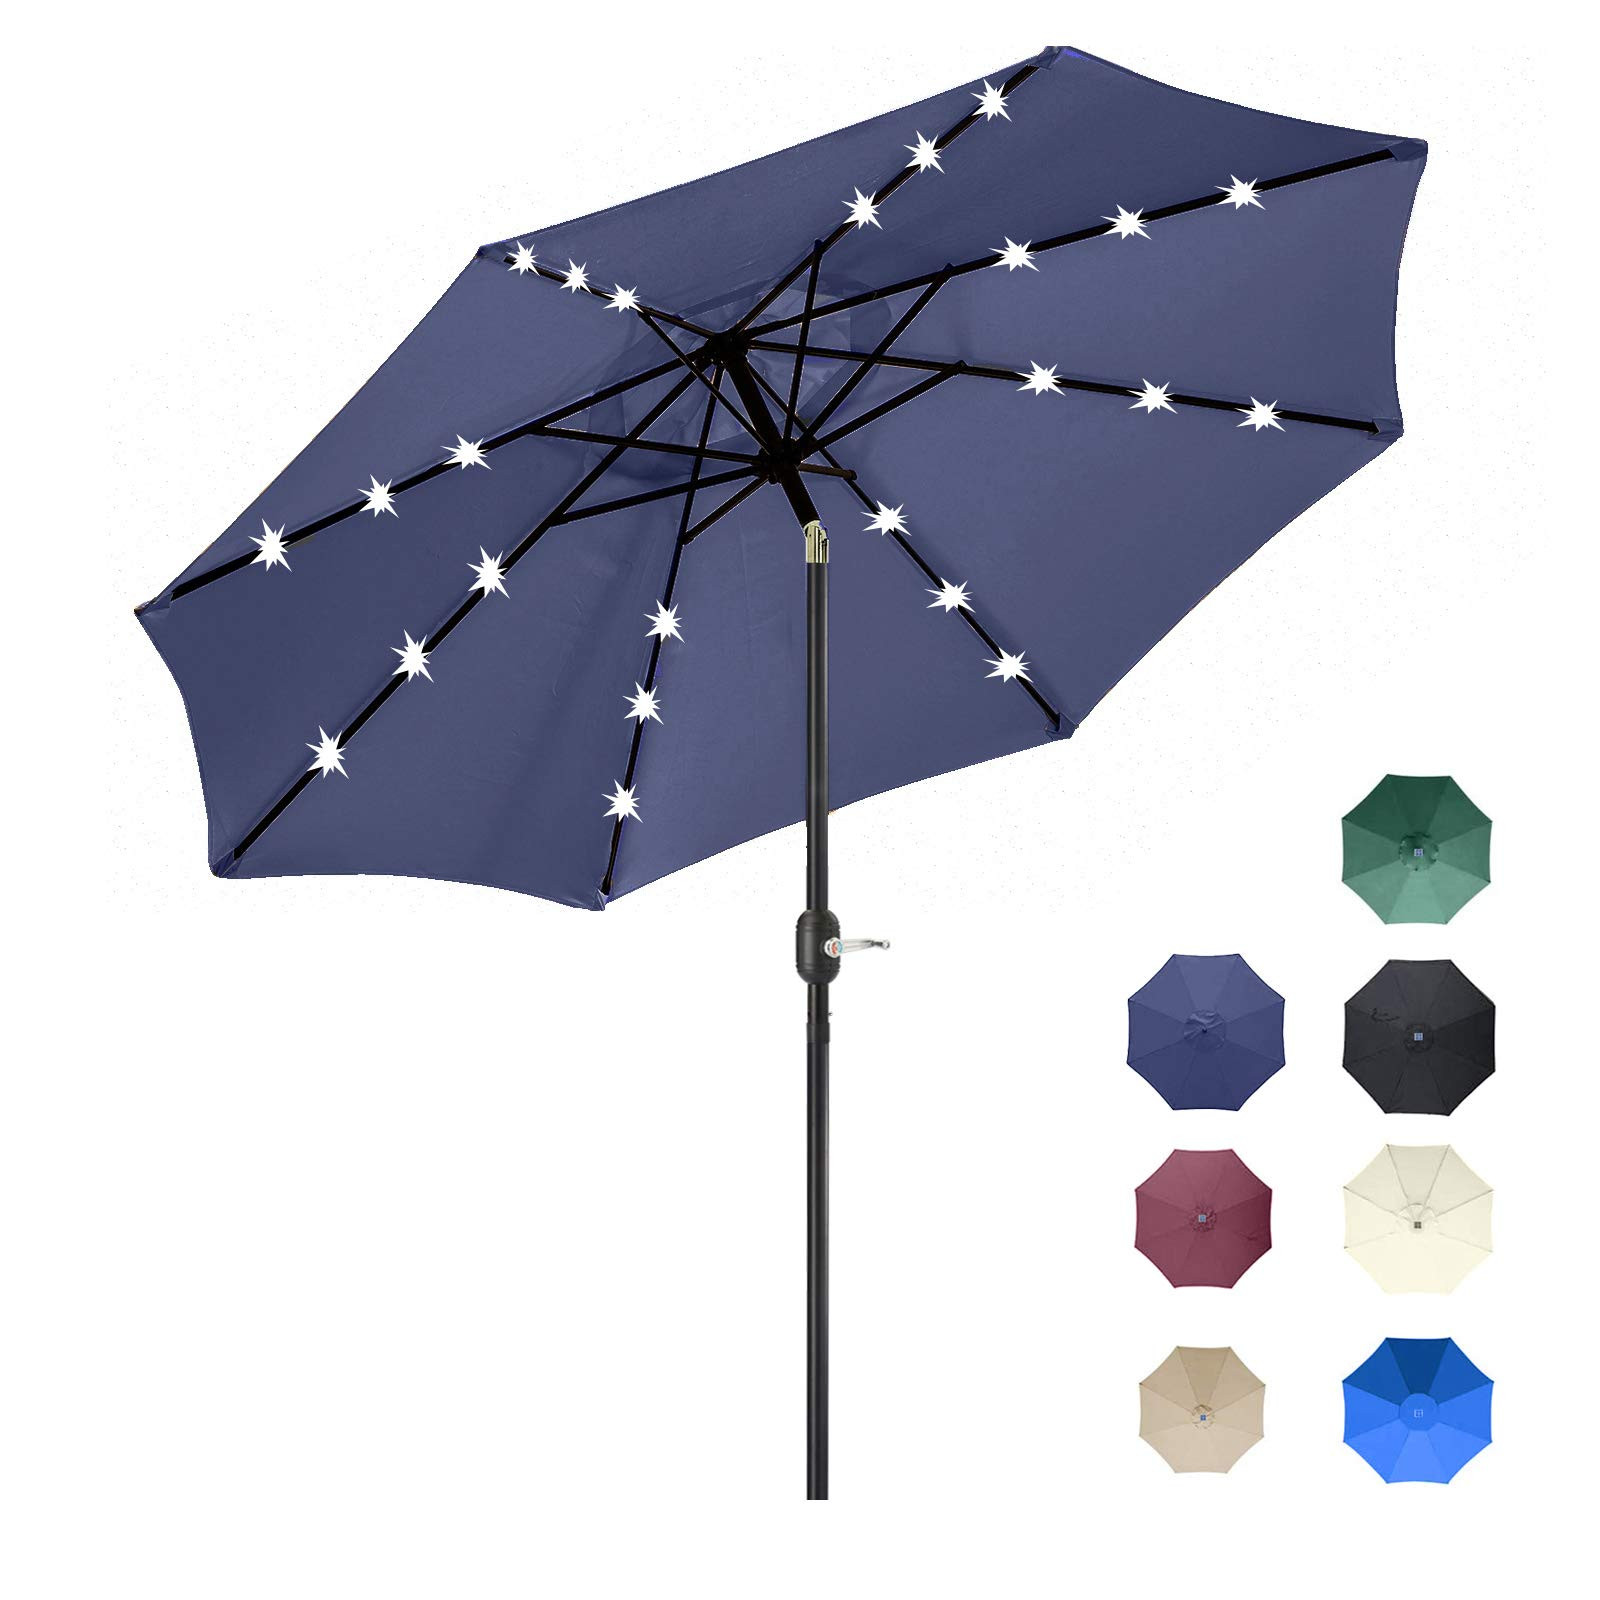 9FT Solar 24 LED Lighted Outdoor Patio Umbrella with 8 Ribs/Tilt Adjustment and Crank Lift System (Navy Blue)